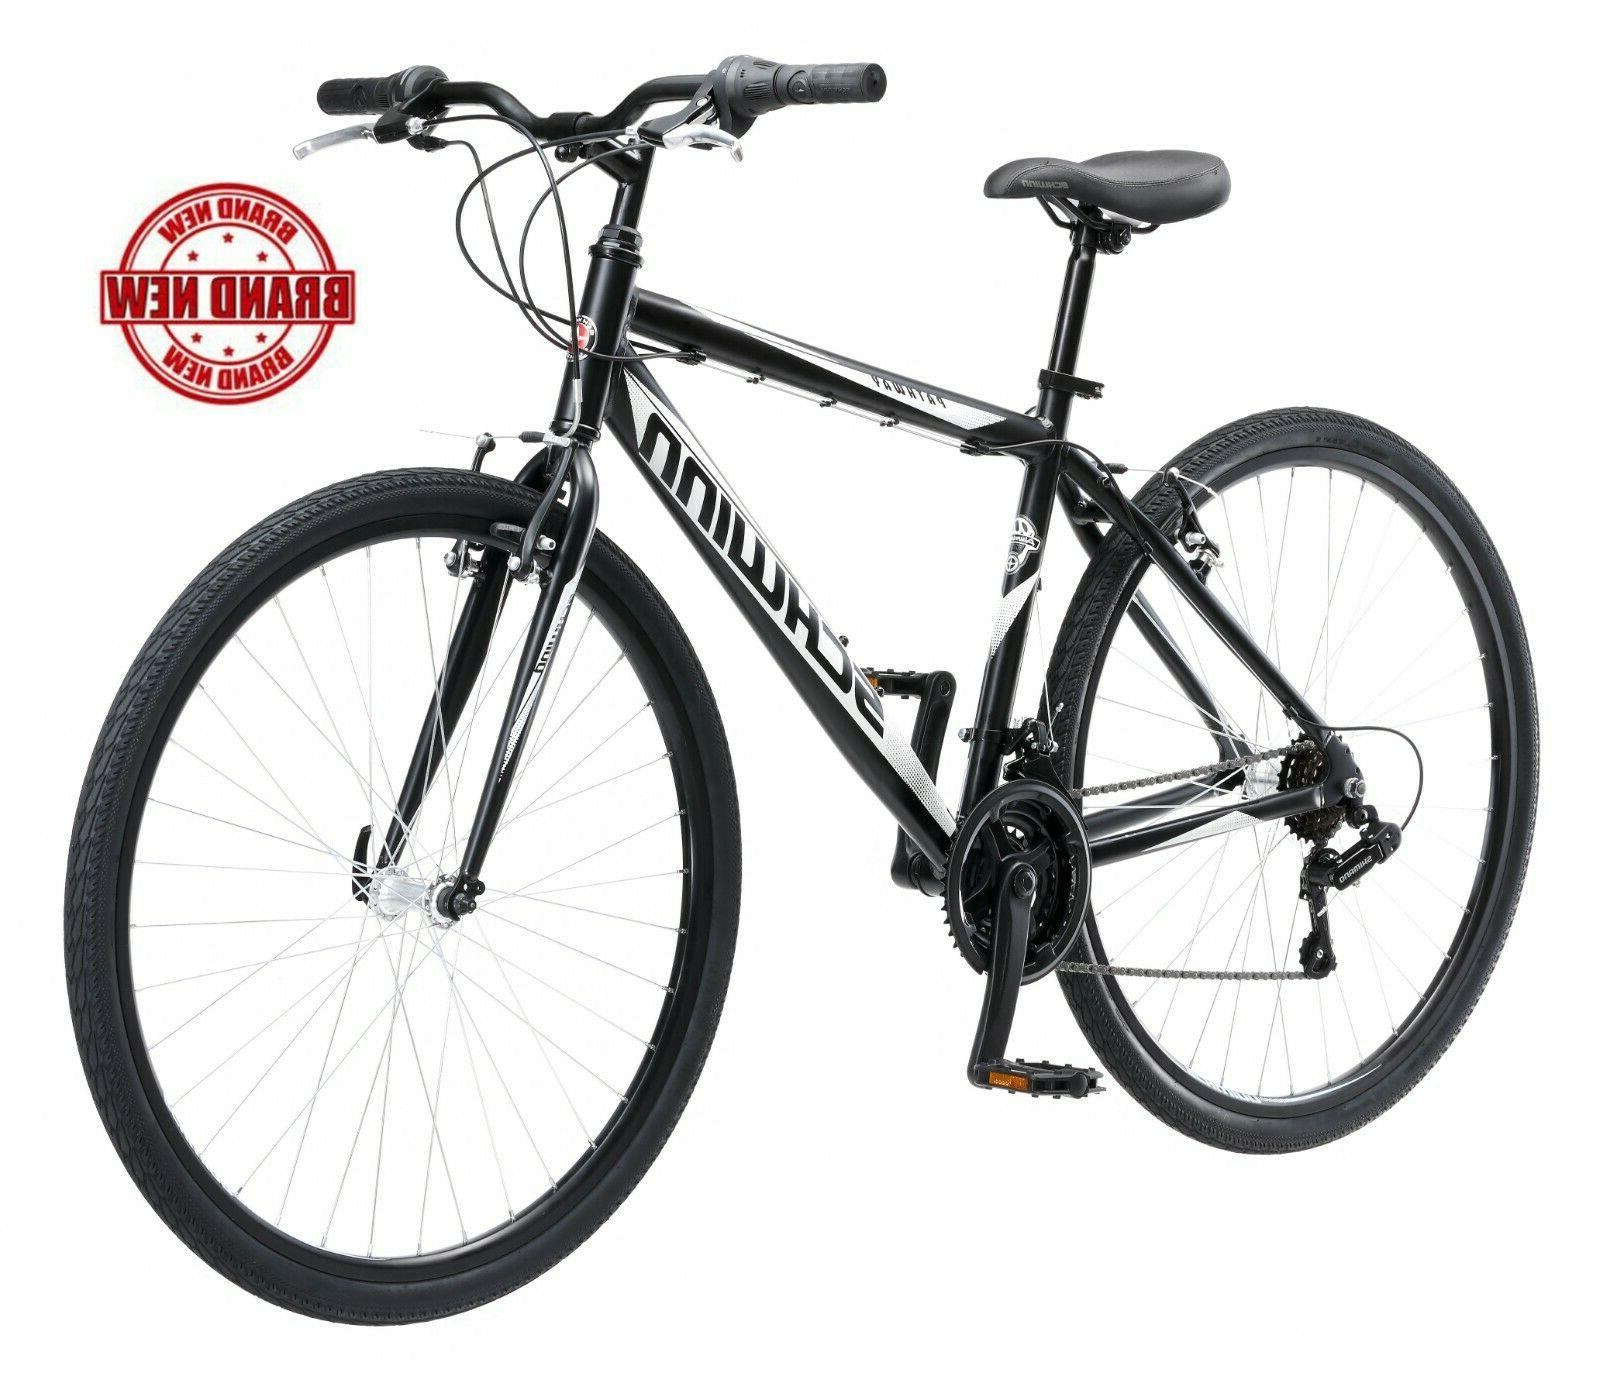 Schwinn Hybrid Bike 700C Men's Black Cruiser Alloy Frame Spo